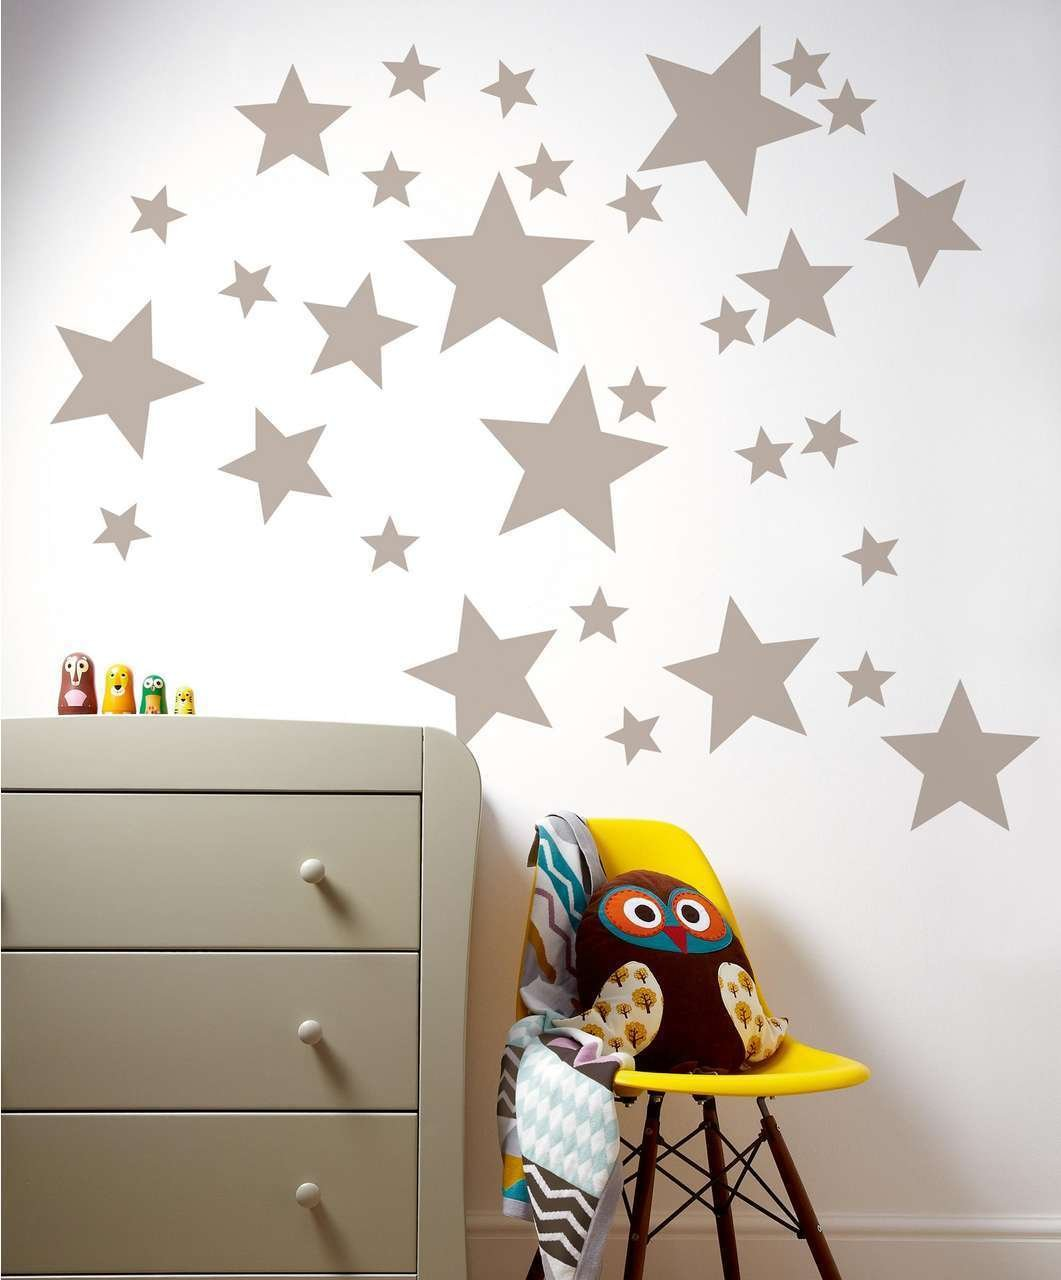 55 Mixed size Stars Wall Stickers Kid Decal Art Nursery Bedroom Vinyl Decoration (Bright Yellow)